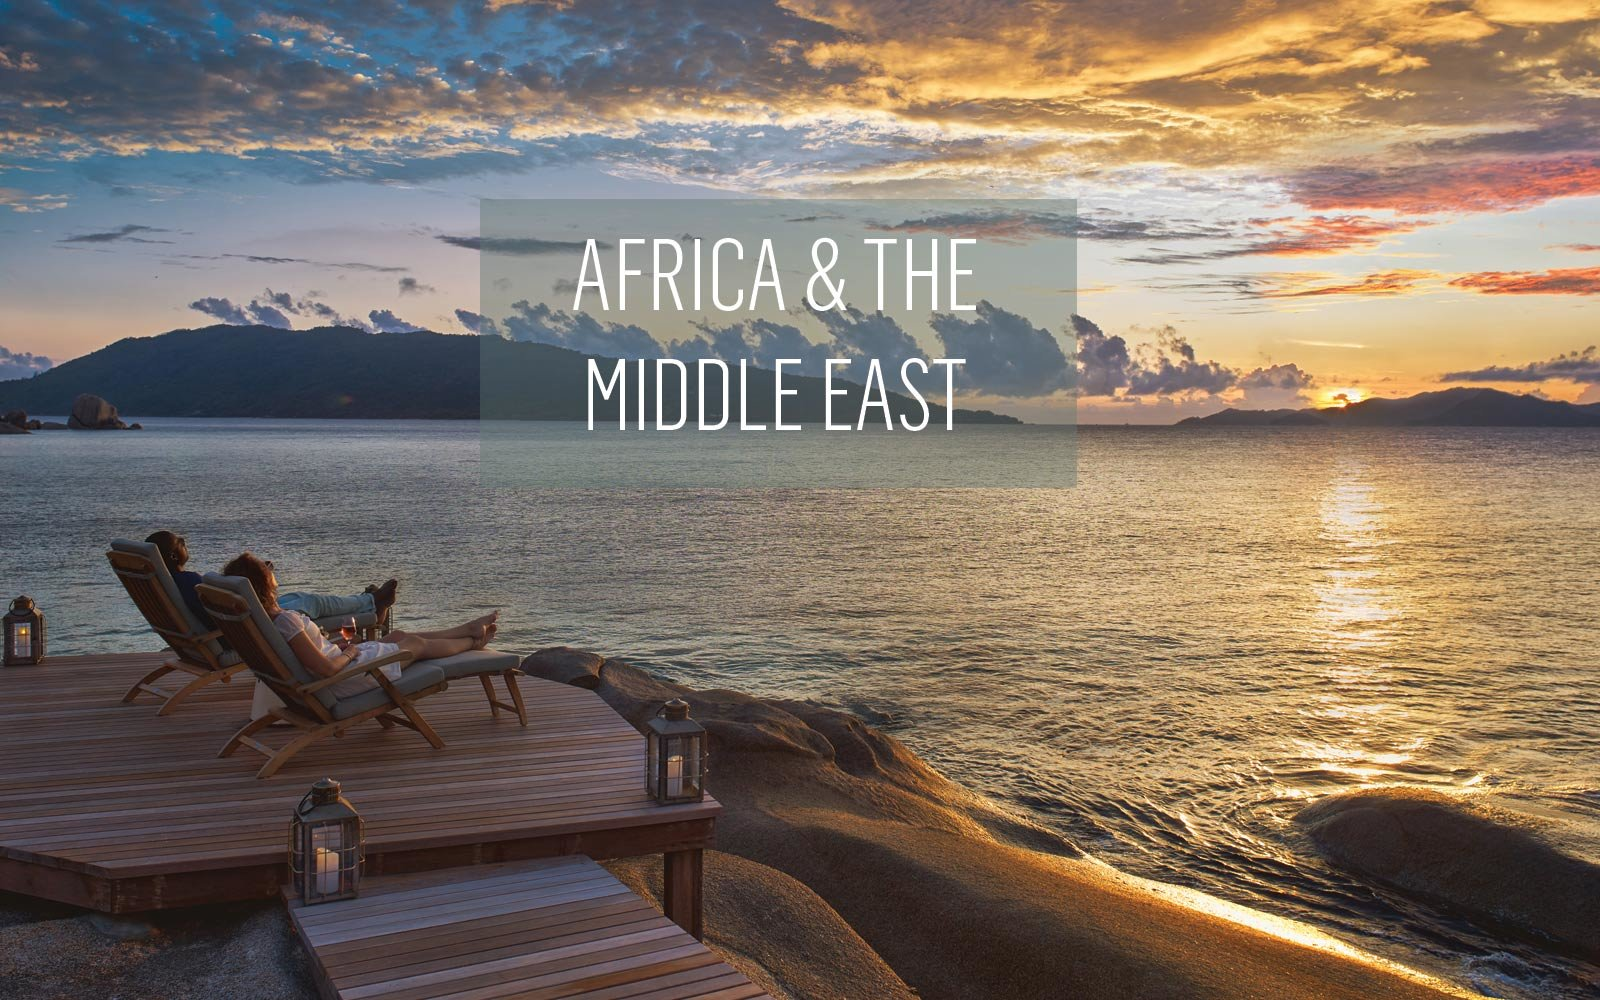 Africa and the Middle East, Six Senses Zil Pasyon